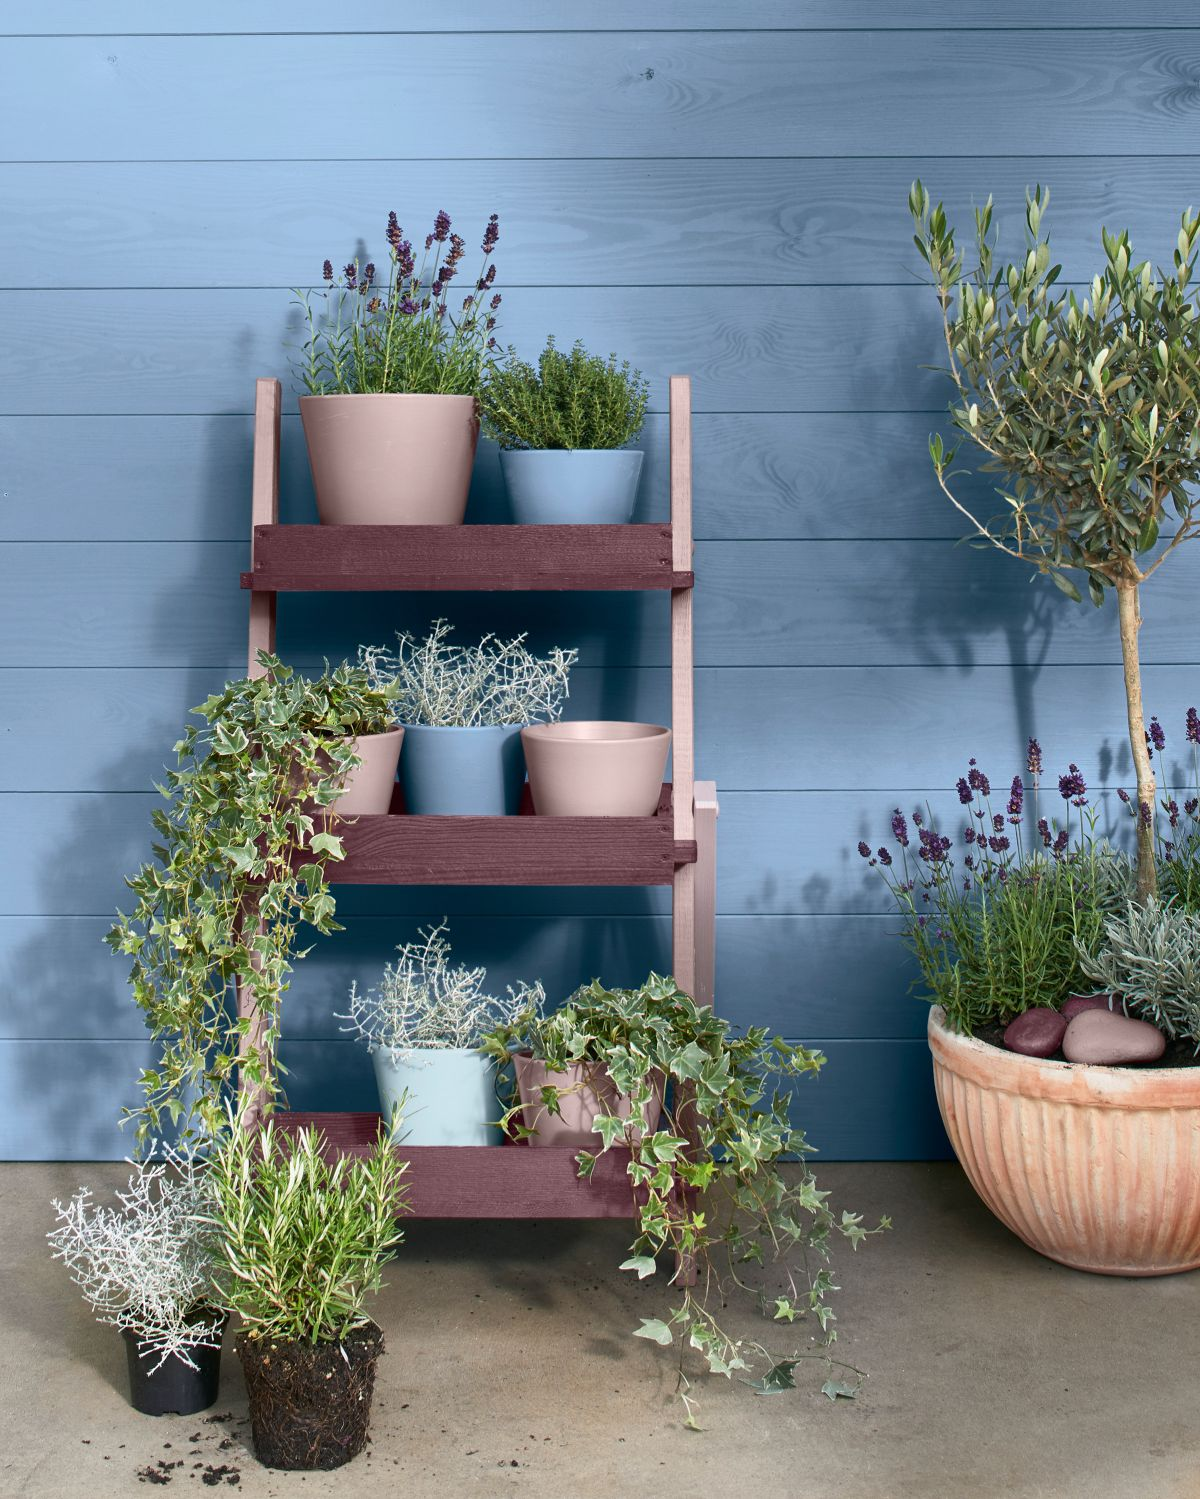 House plants: 19 gorgeous display ideas to brighten up your